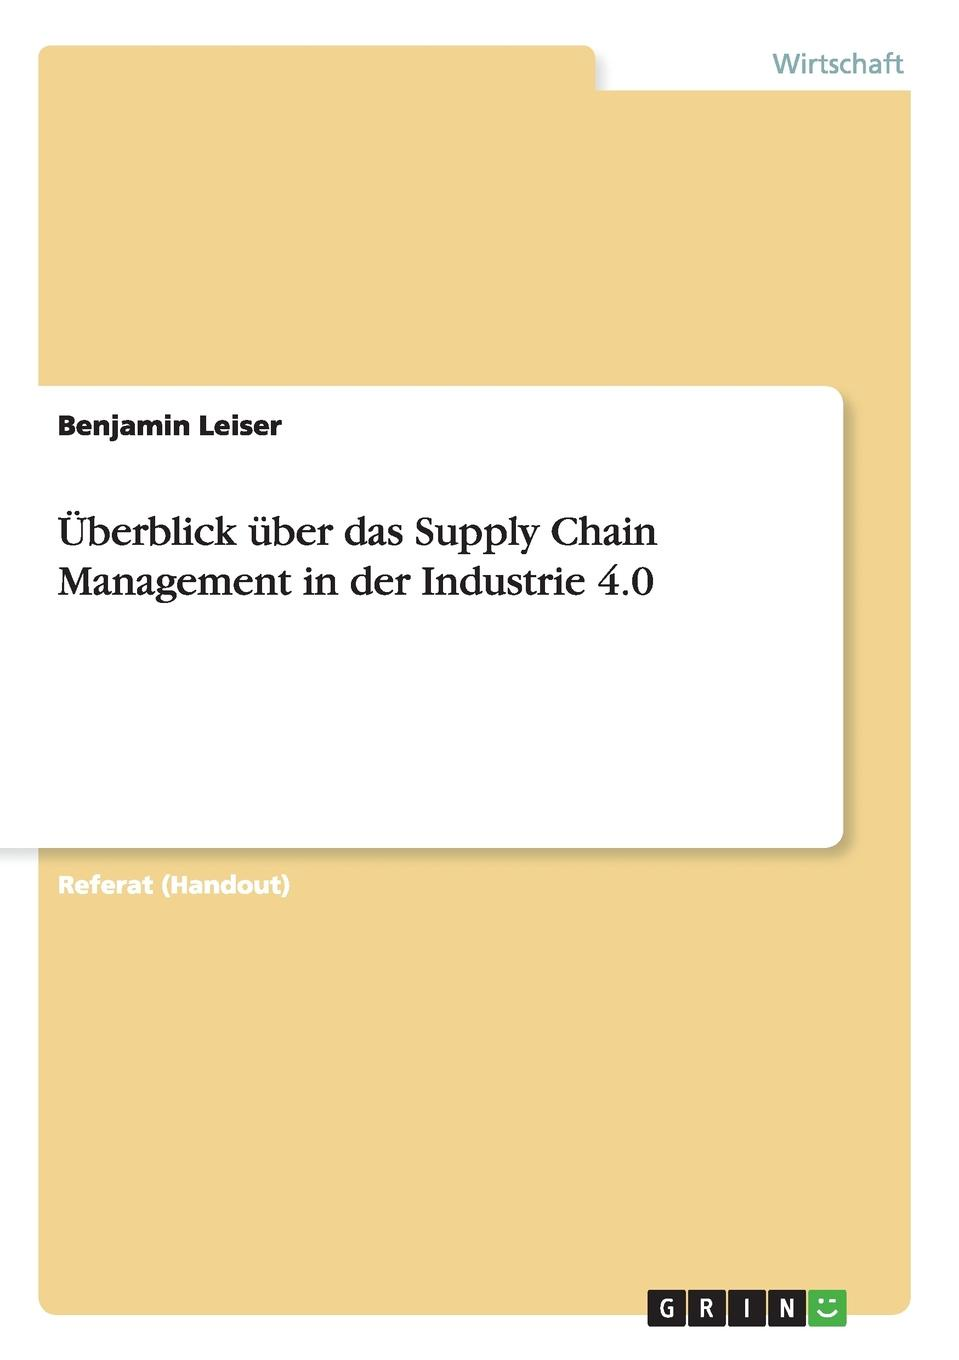 Benjamin Leiser Uberblick uber das Supply Chain Management in der Industrie 4.0 thomas schauf die unregierbarkeitstheorie der 1970er jahre in einer reflexion auf das ausgehende 20 jahrhundert